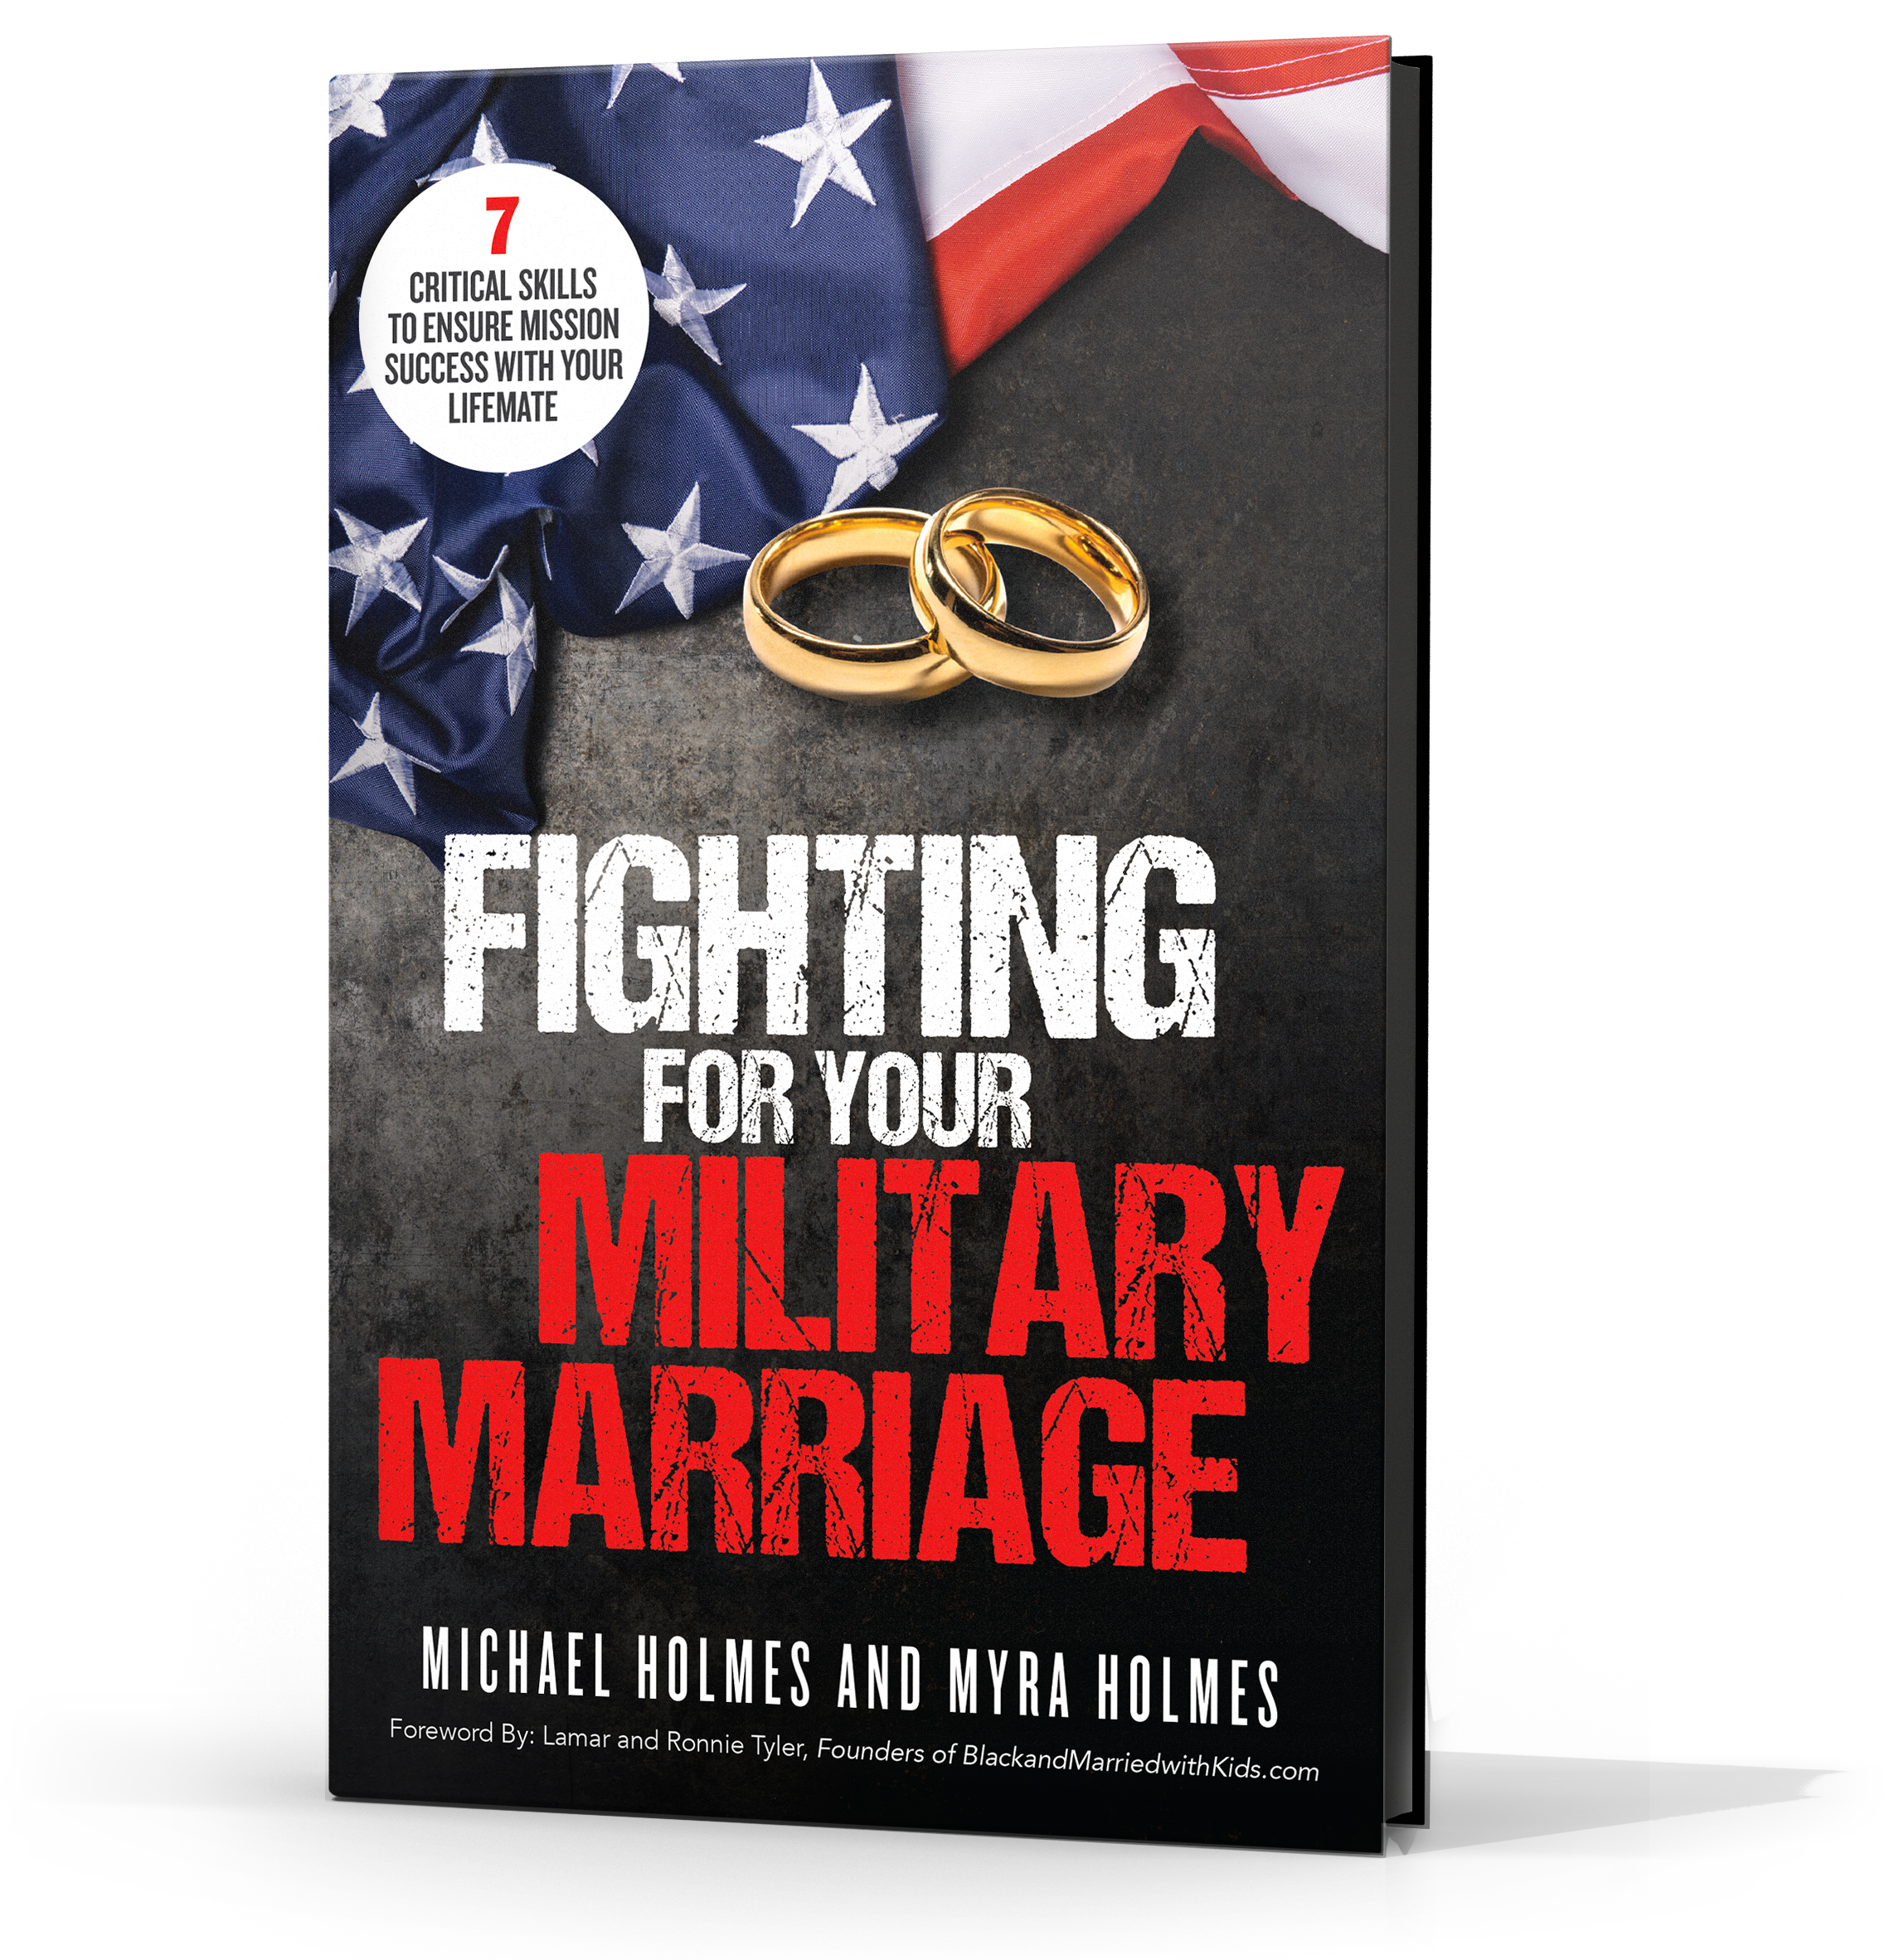 Certified Professional Life Coaches and Bestselling Authors Release Book Aimed at Making Military Marriages Succeed